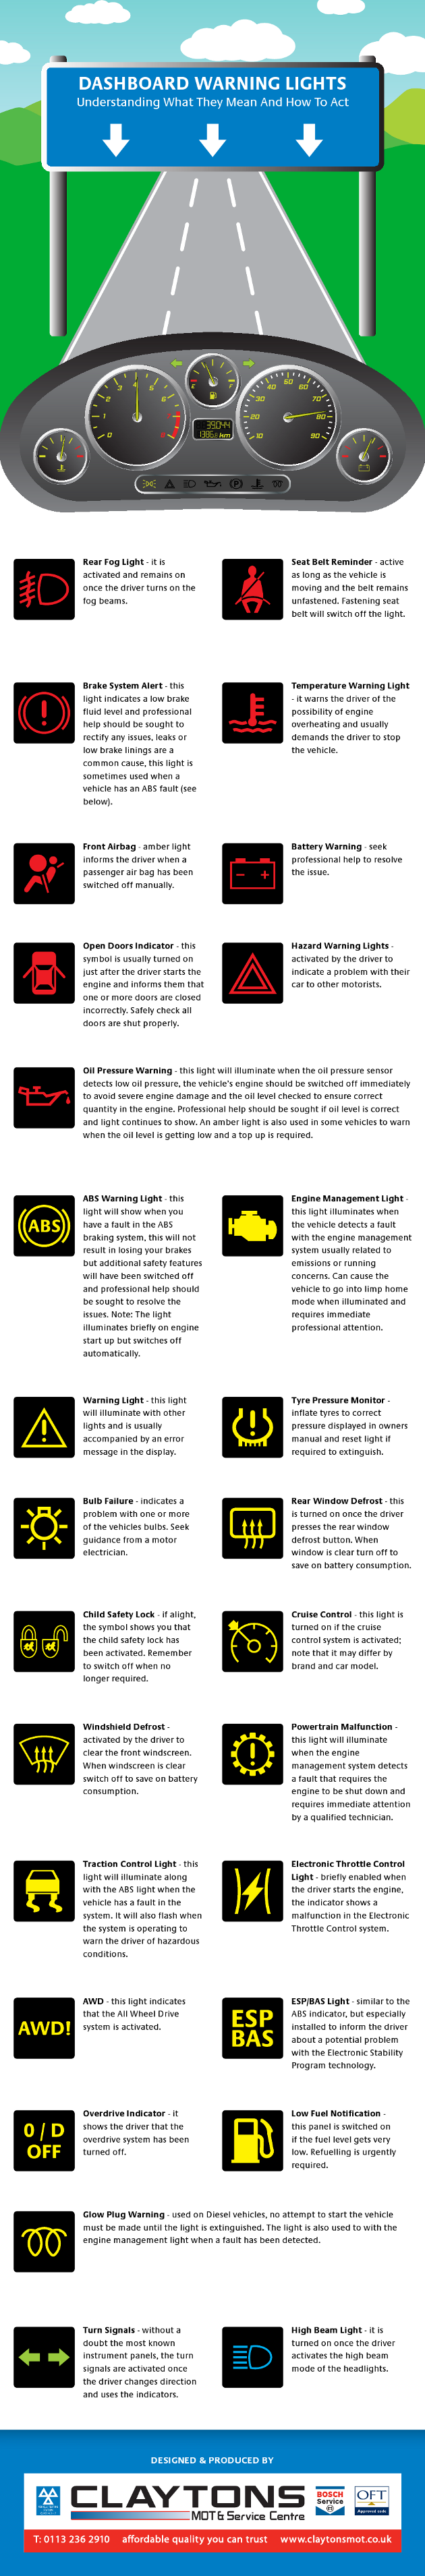 Mini Cooper Dashboard Warning Lights Diagram : cooper, dashboard, warning, lights, diagram, Warning, Lights, Meaning, Valentine, About